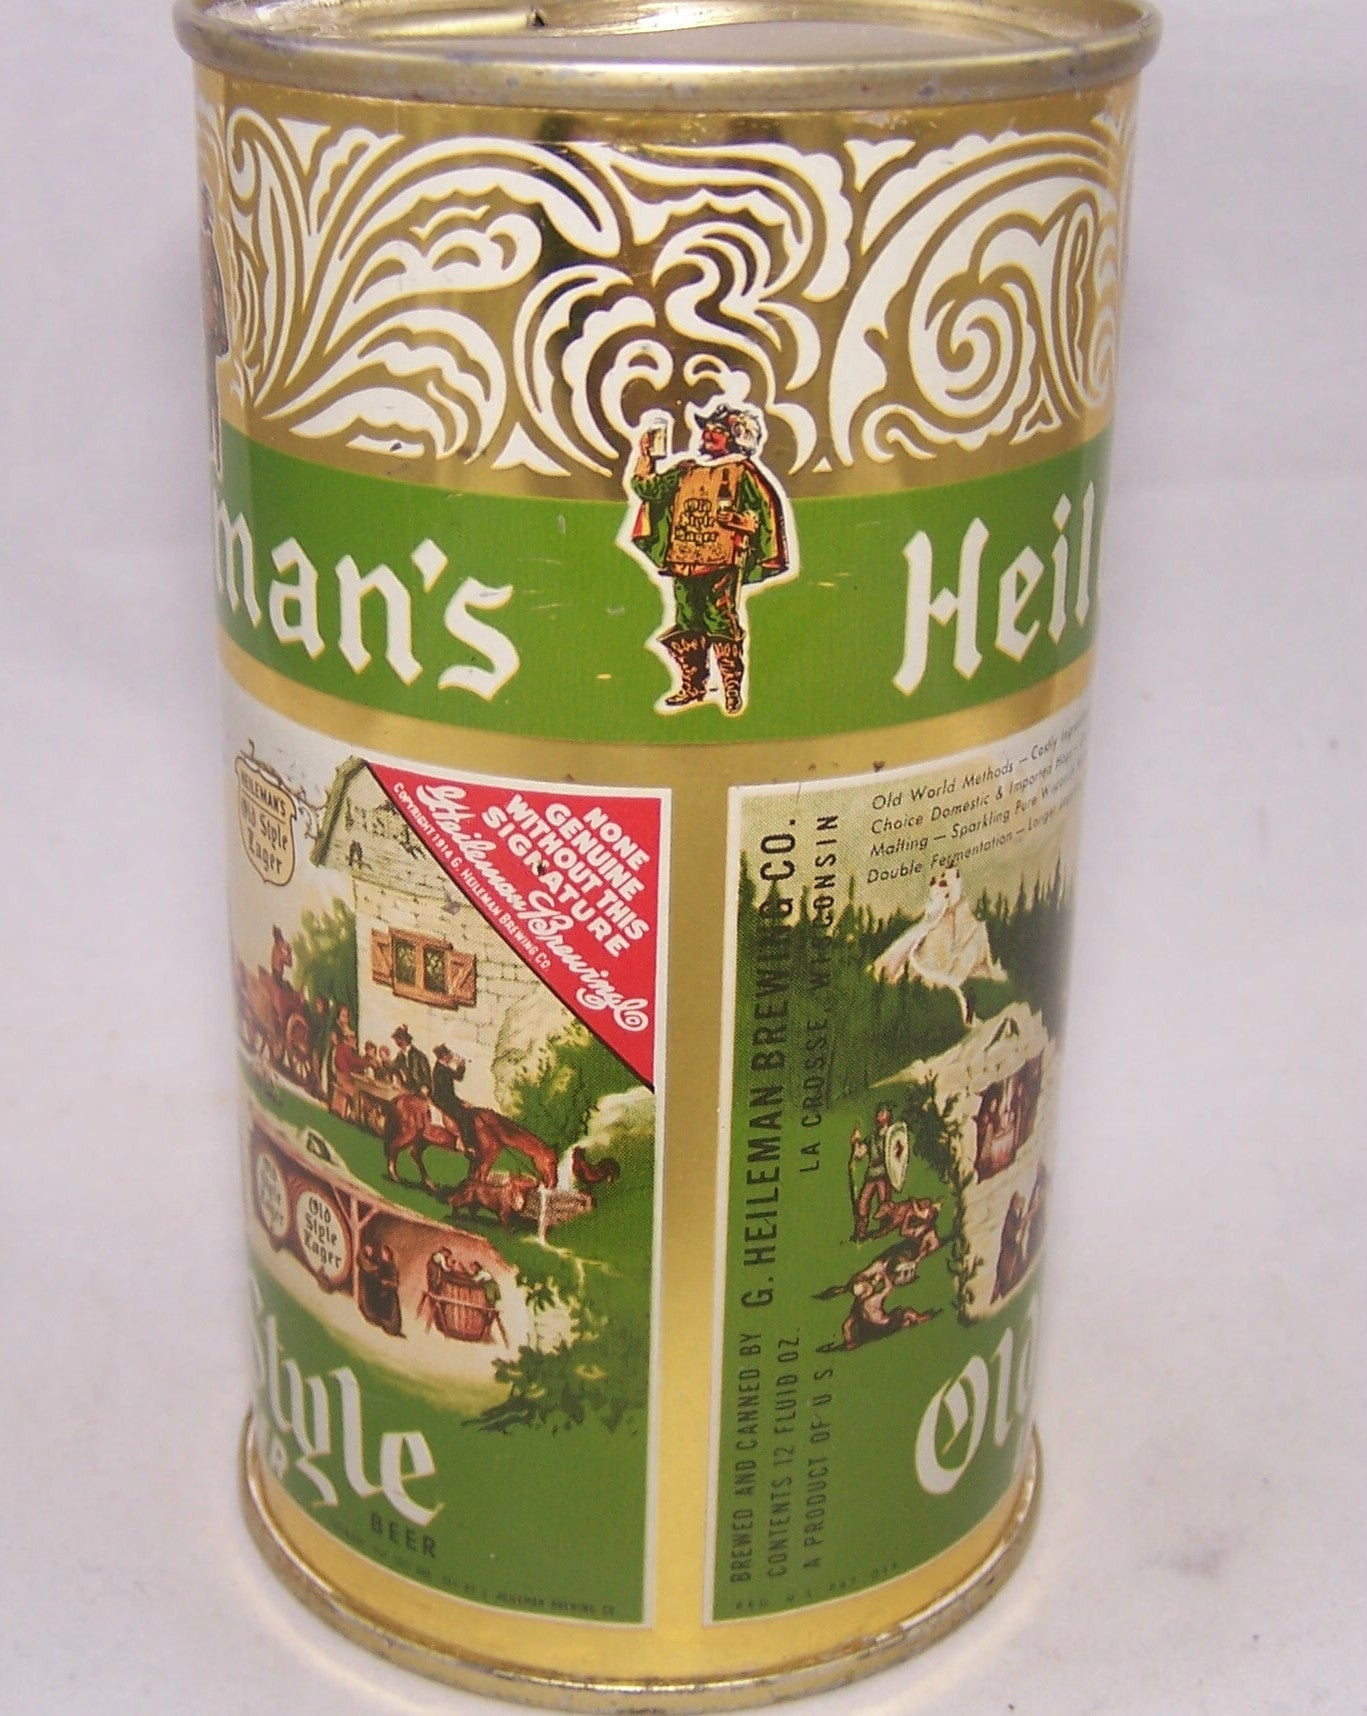 Heileman's Old Style Lager, USBC 108-14. Grade A1+ Sold on 01/14/17